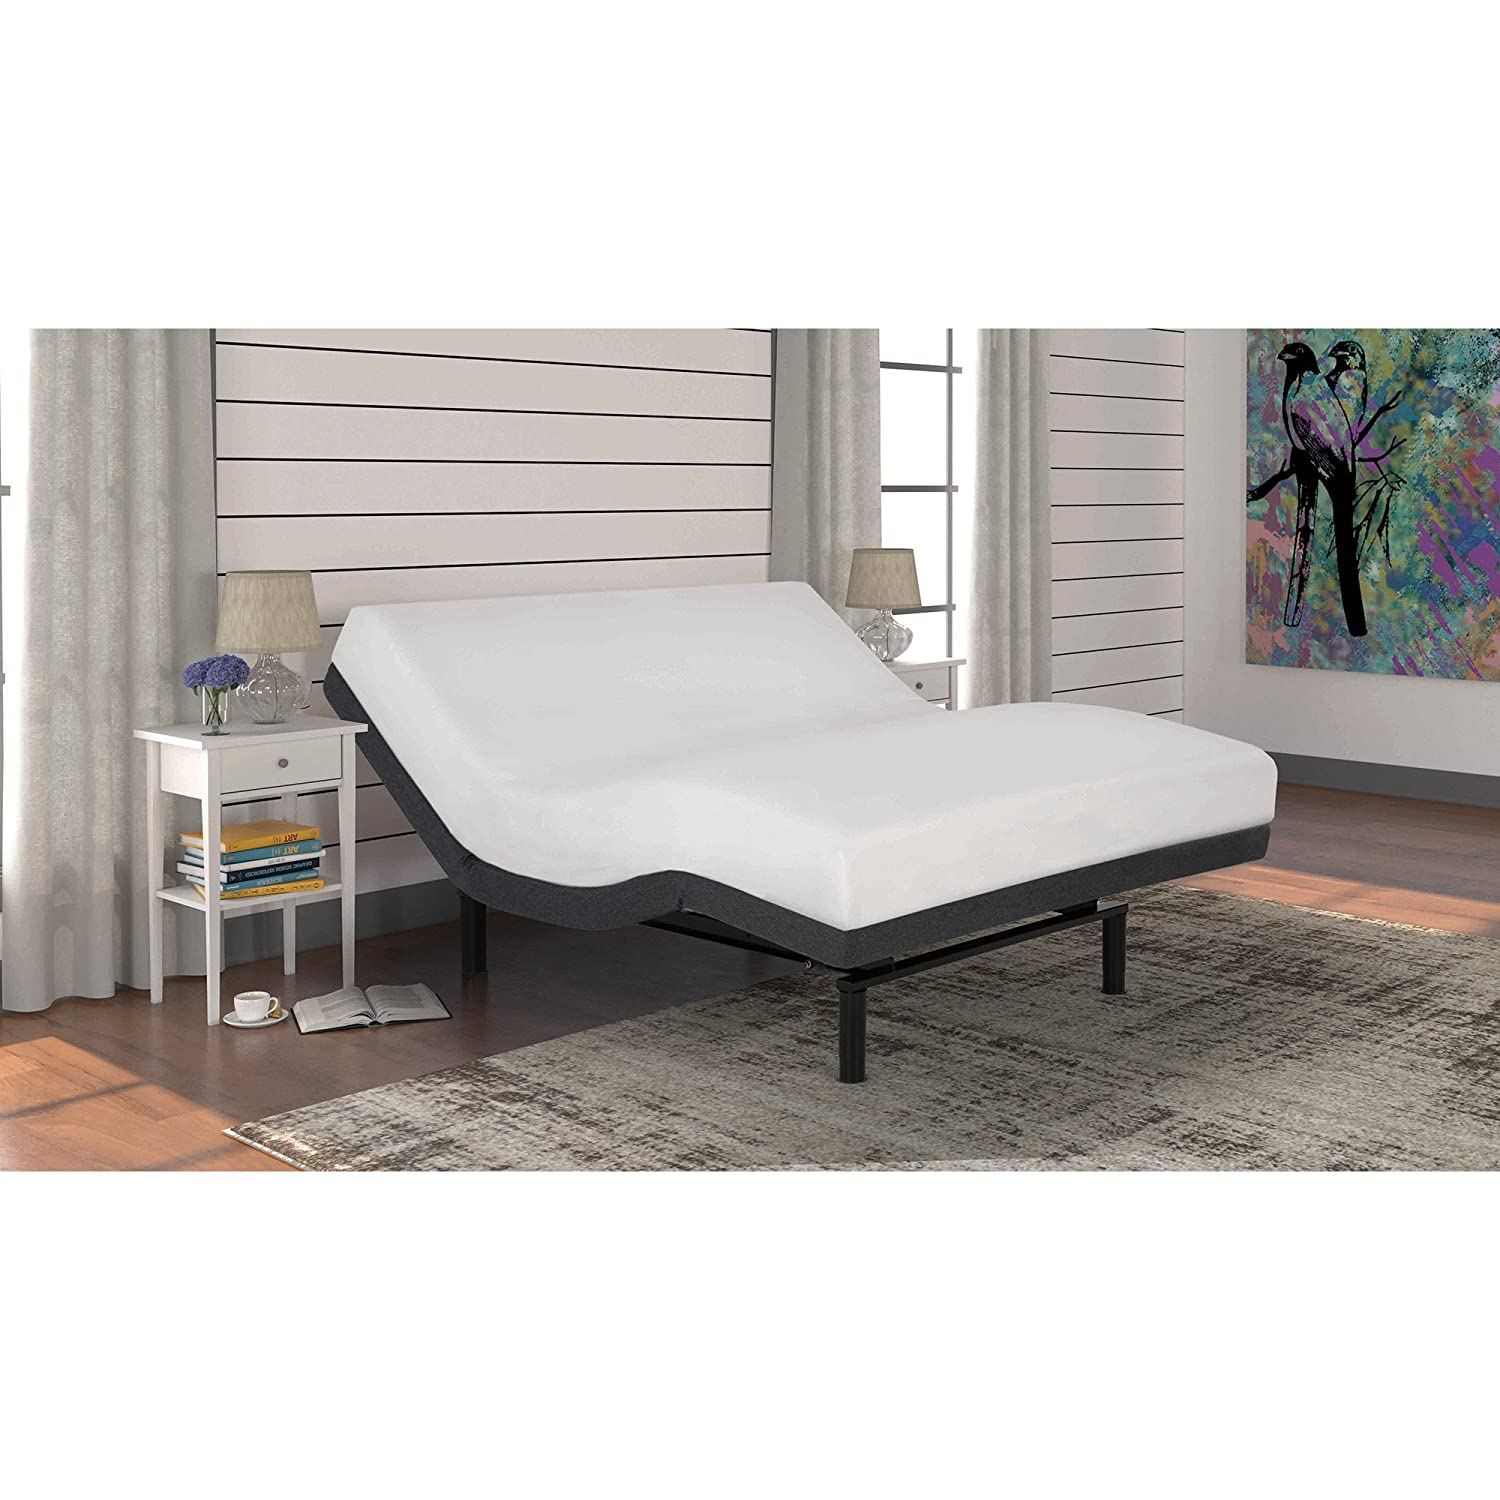 Fashion Bed Group Fashion Bed Group S-Cape 2.0 Adjustable Bed Base with WallHugger Technology and Full Body Massage, Twin X-Large, Charcoal Gray